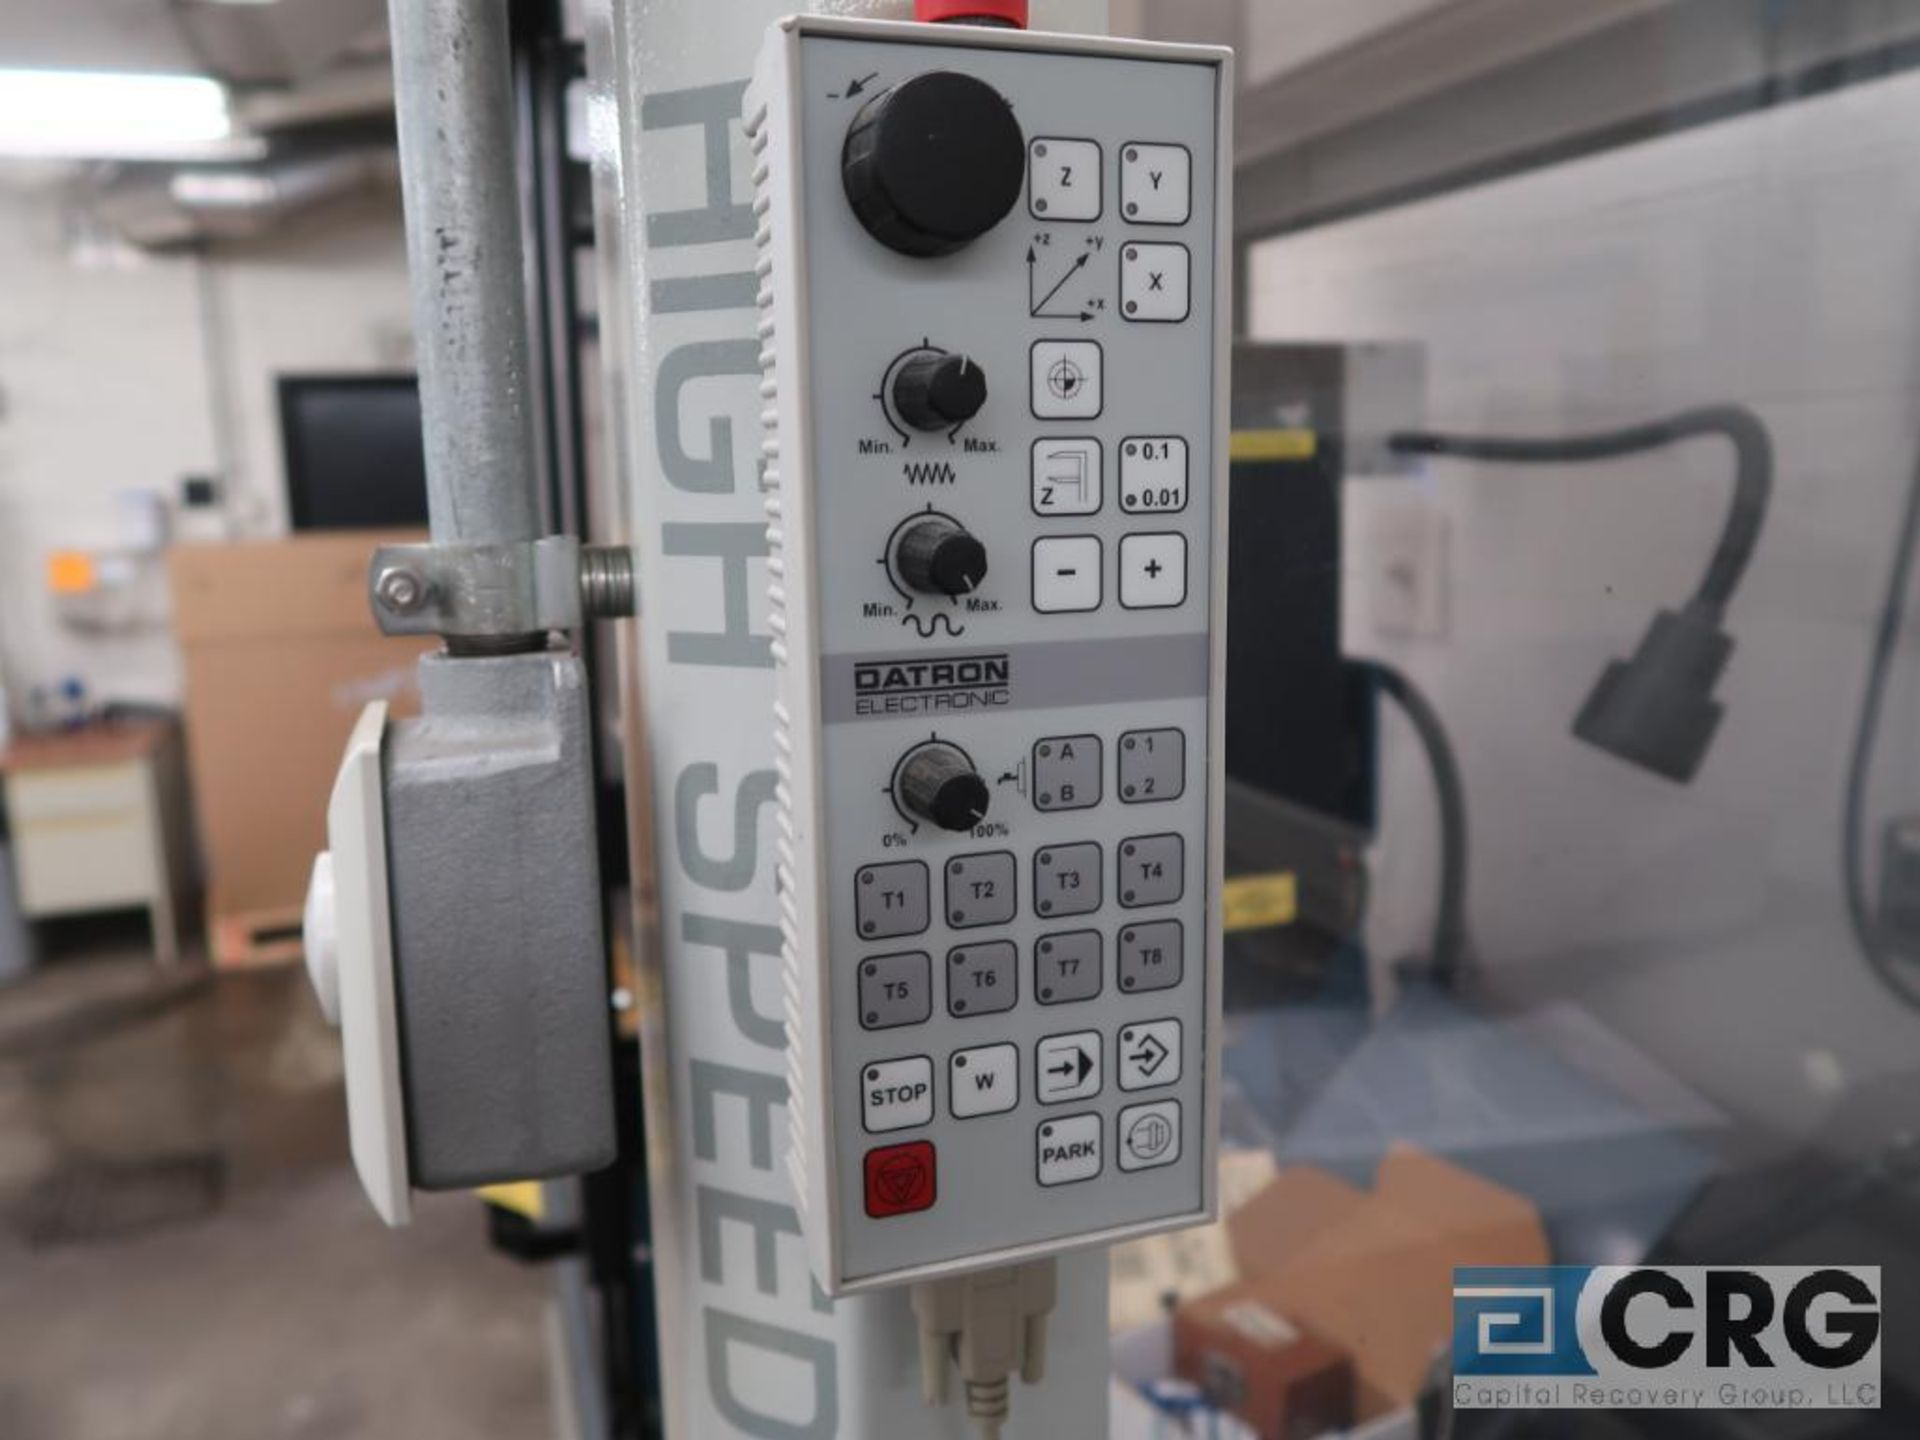 2001 Datron illing engraving center, m/n CAT3D-M4, s/n 40681, 3 axis, CNC, 9 position tool - Image 5 of 8